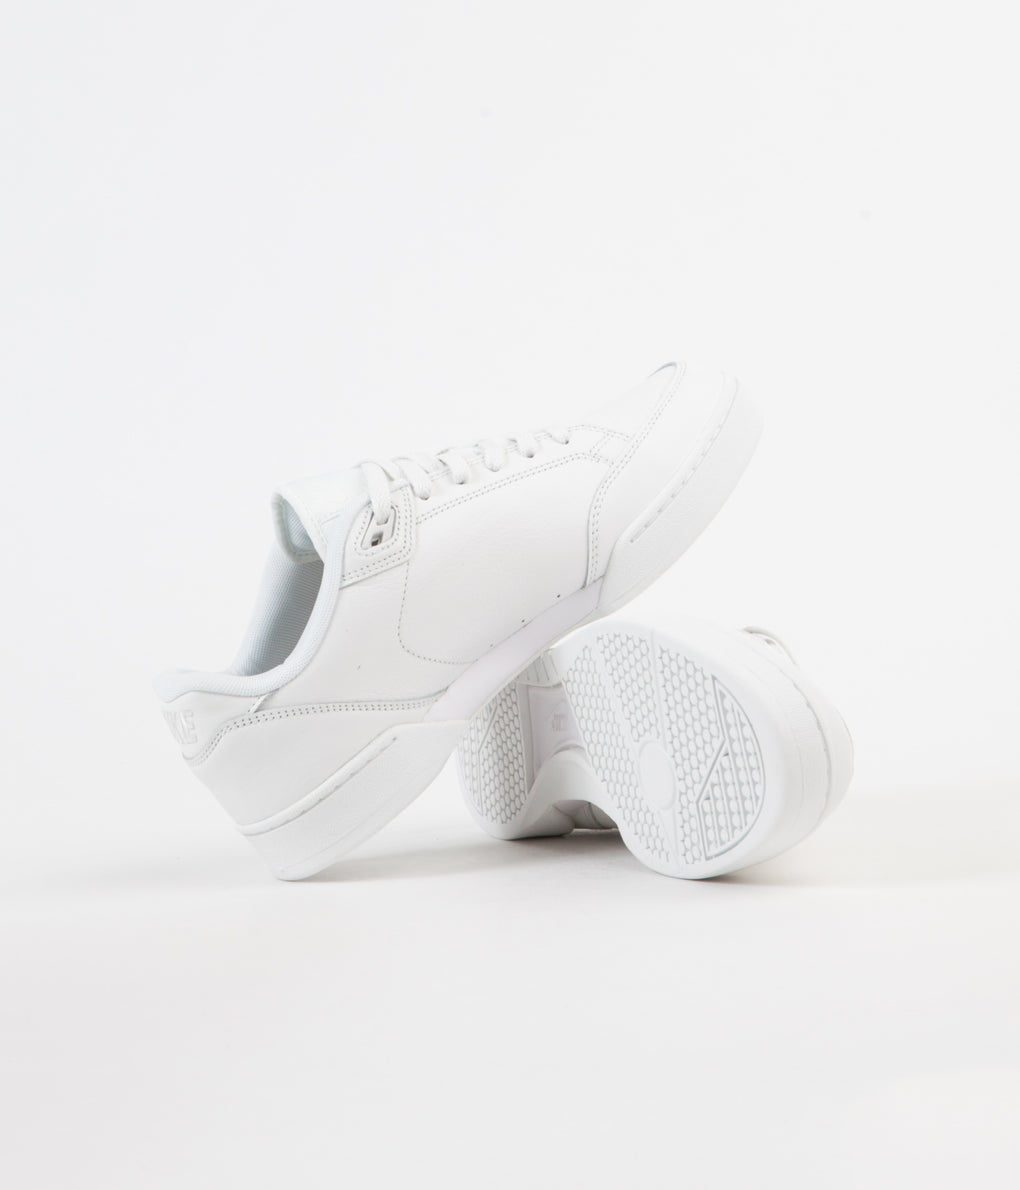 Nike Grandstand II Premium Shoes - Summit White / Summit White - White